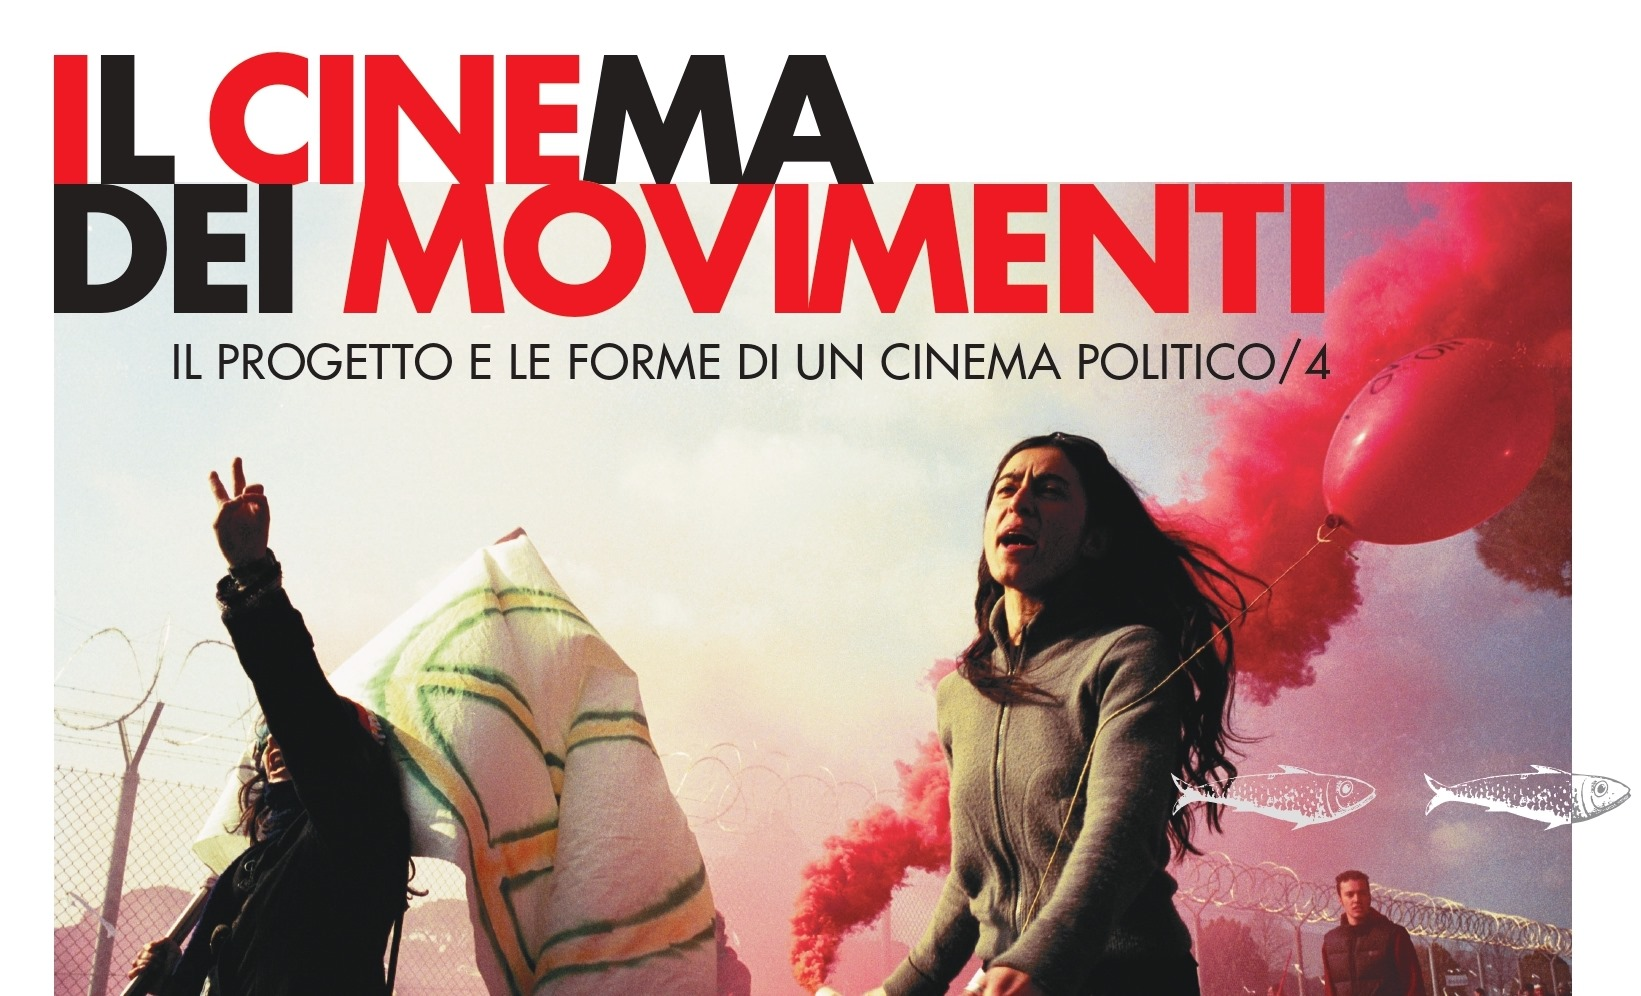 IL CINEMA DEI MOVIMENTI, PROGETTO E FORME DI UN CINEMA POLITICO, IN STREAMING  IL 9 E 10